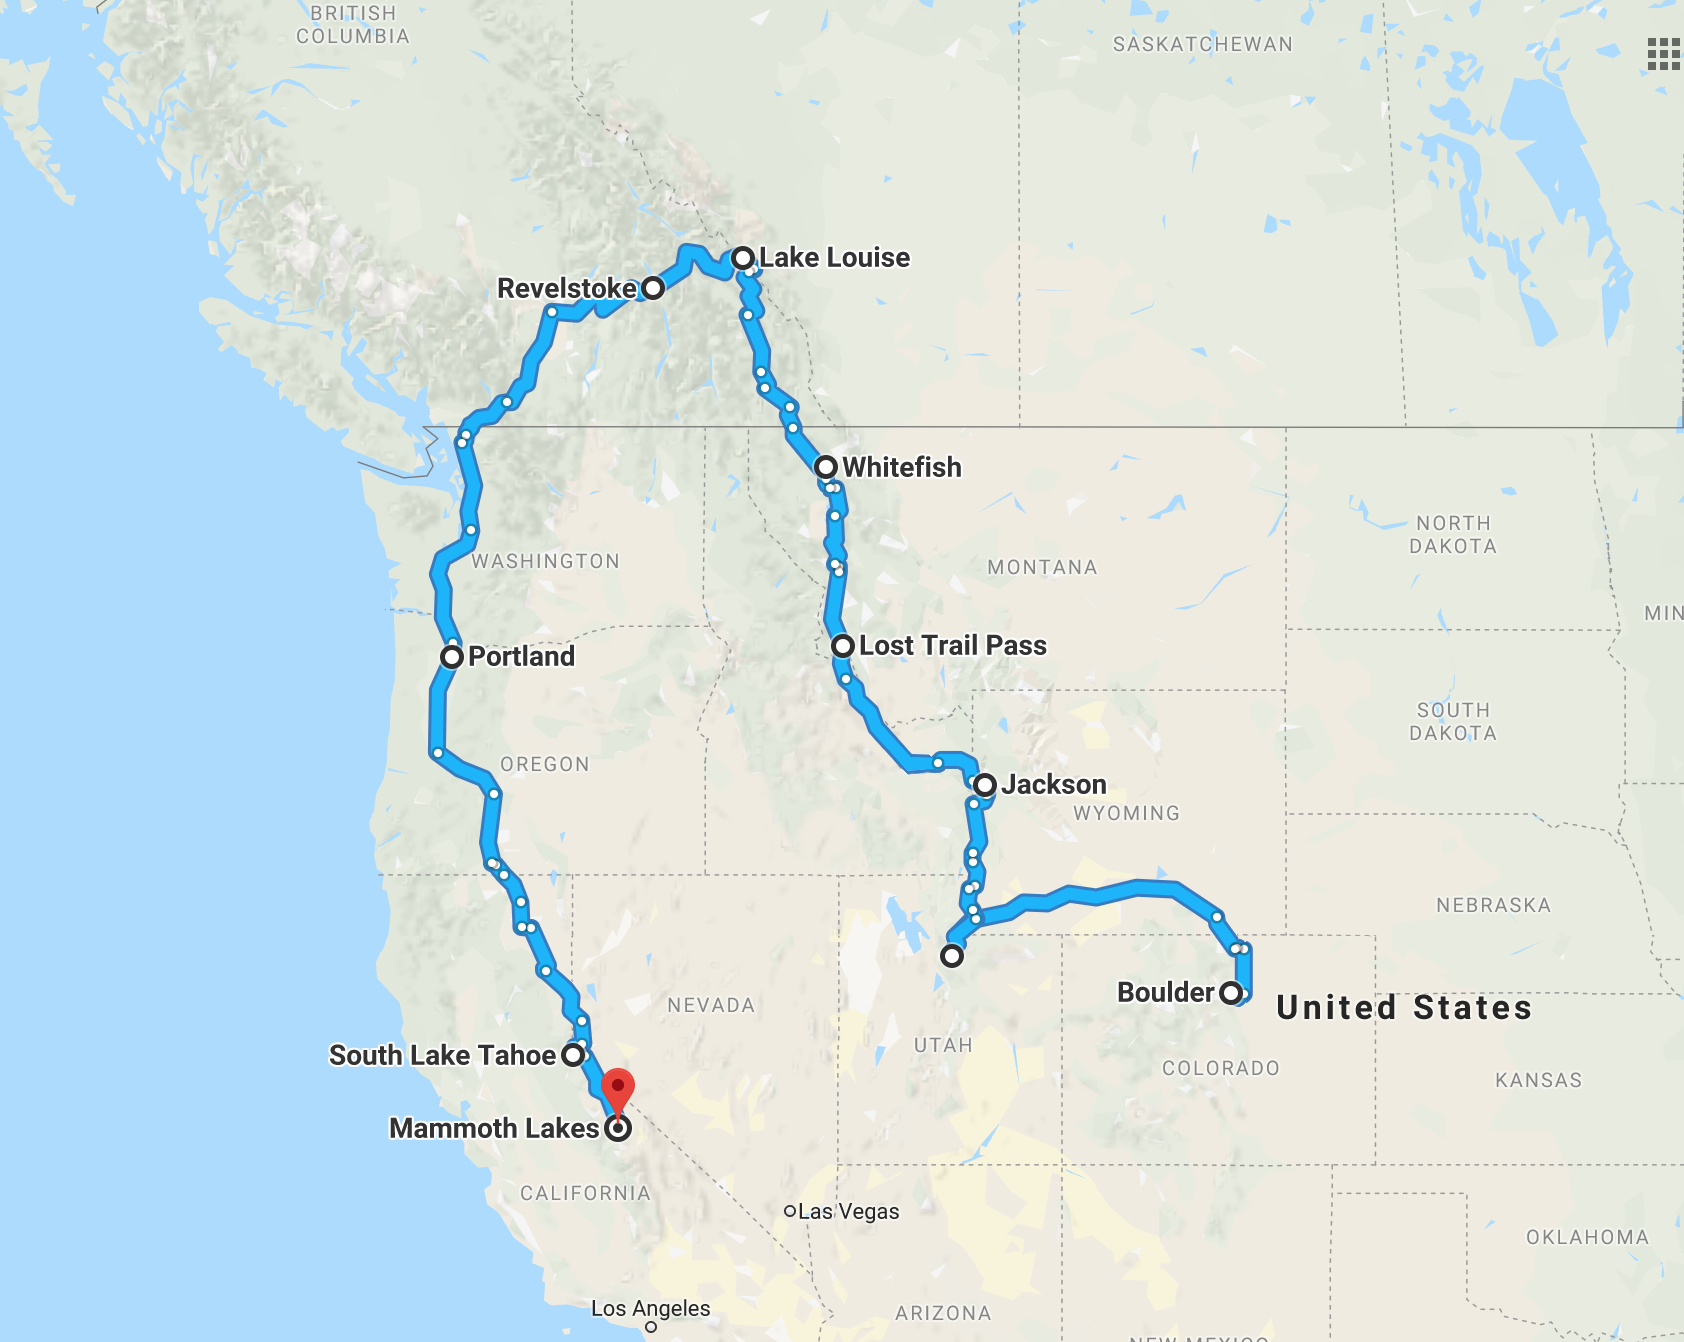 The general route of our roadtrip +/- a few roads, side trips and backtracks.